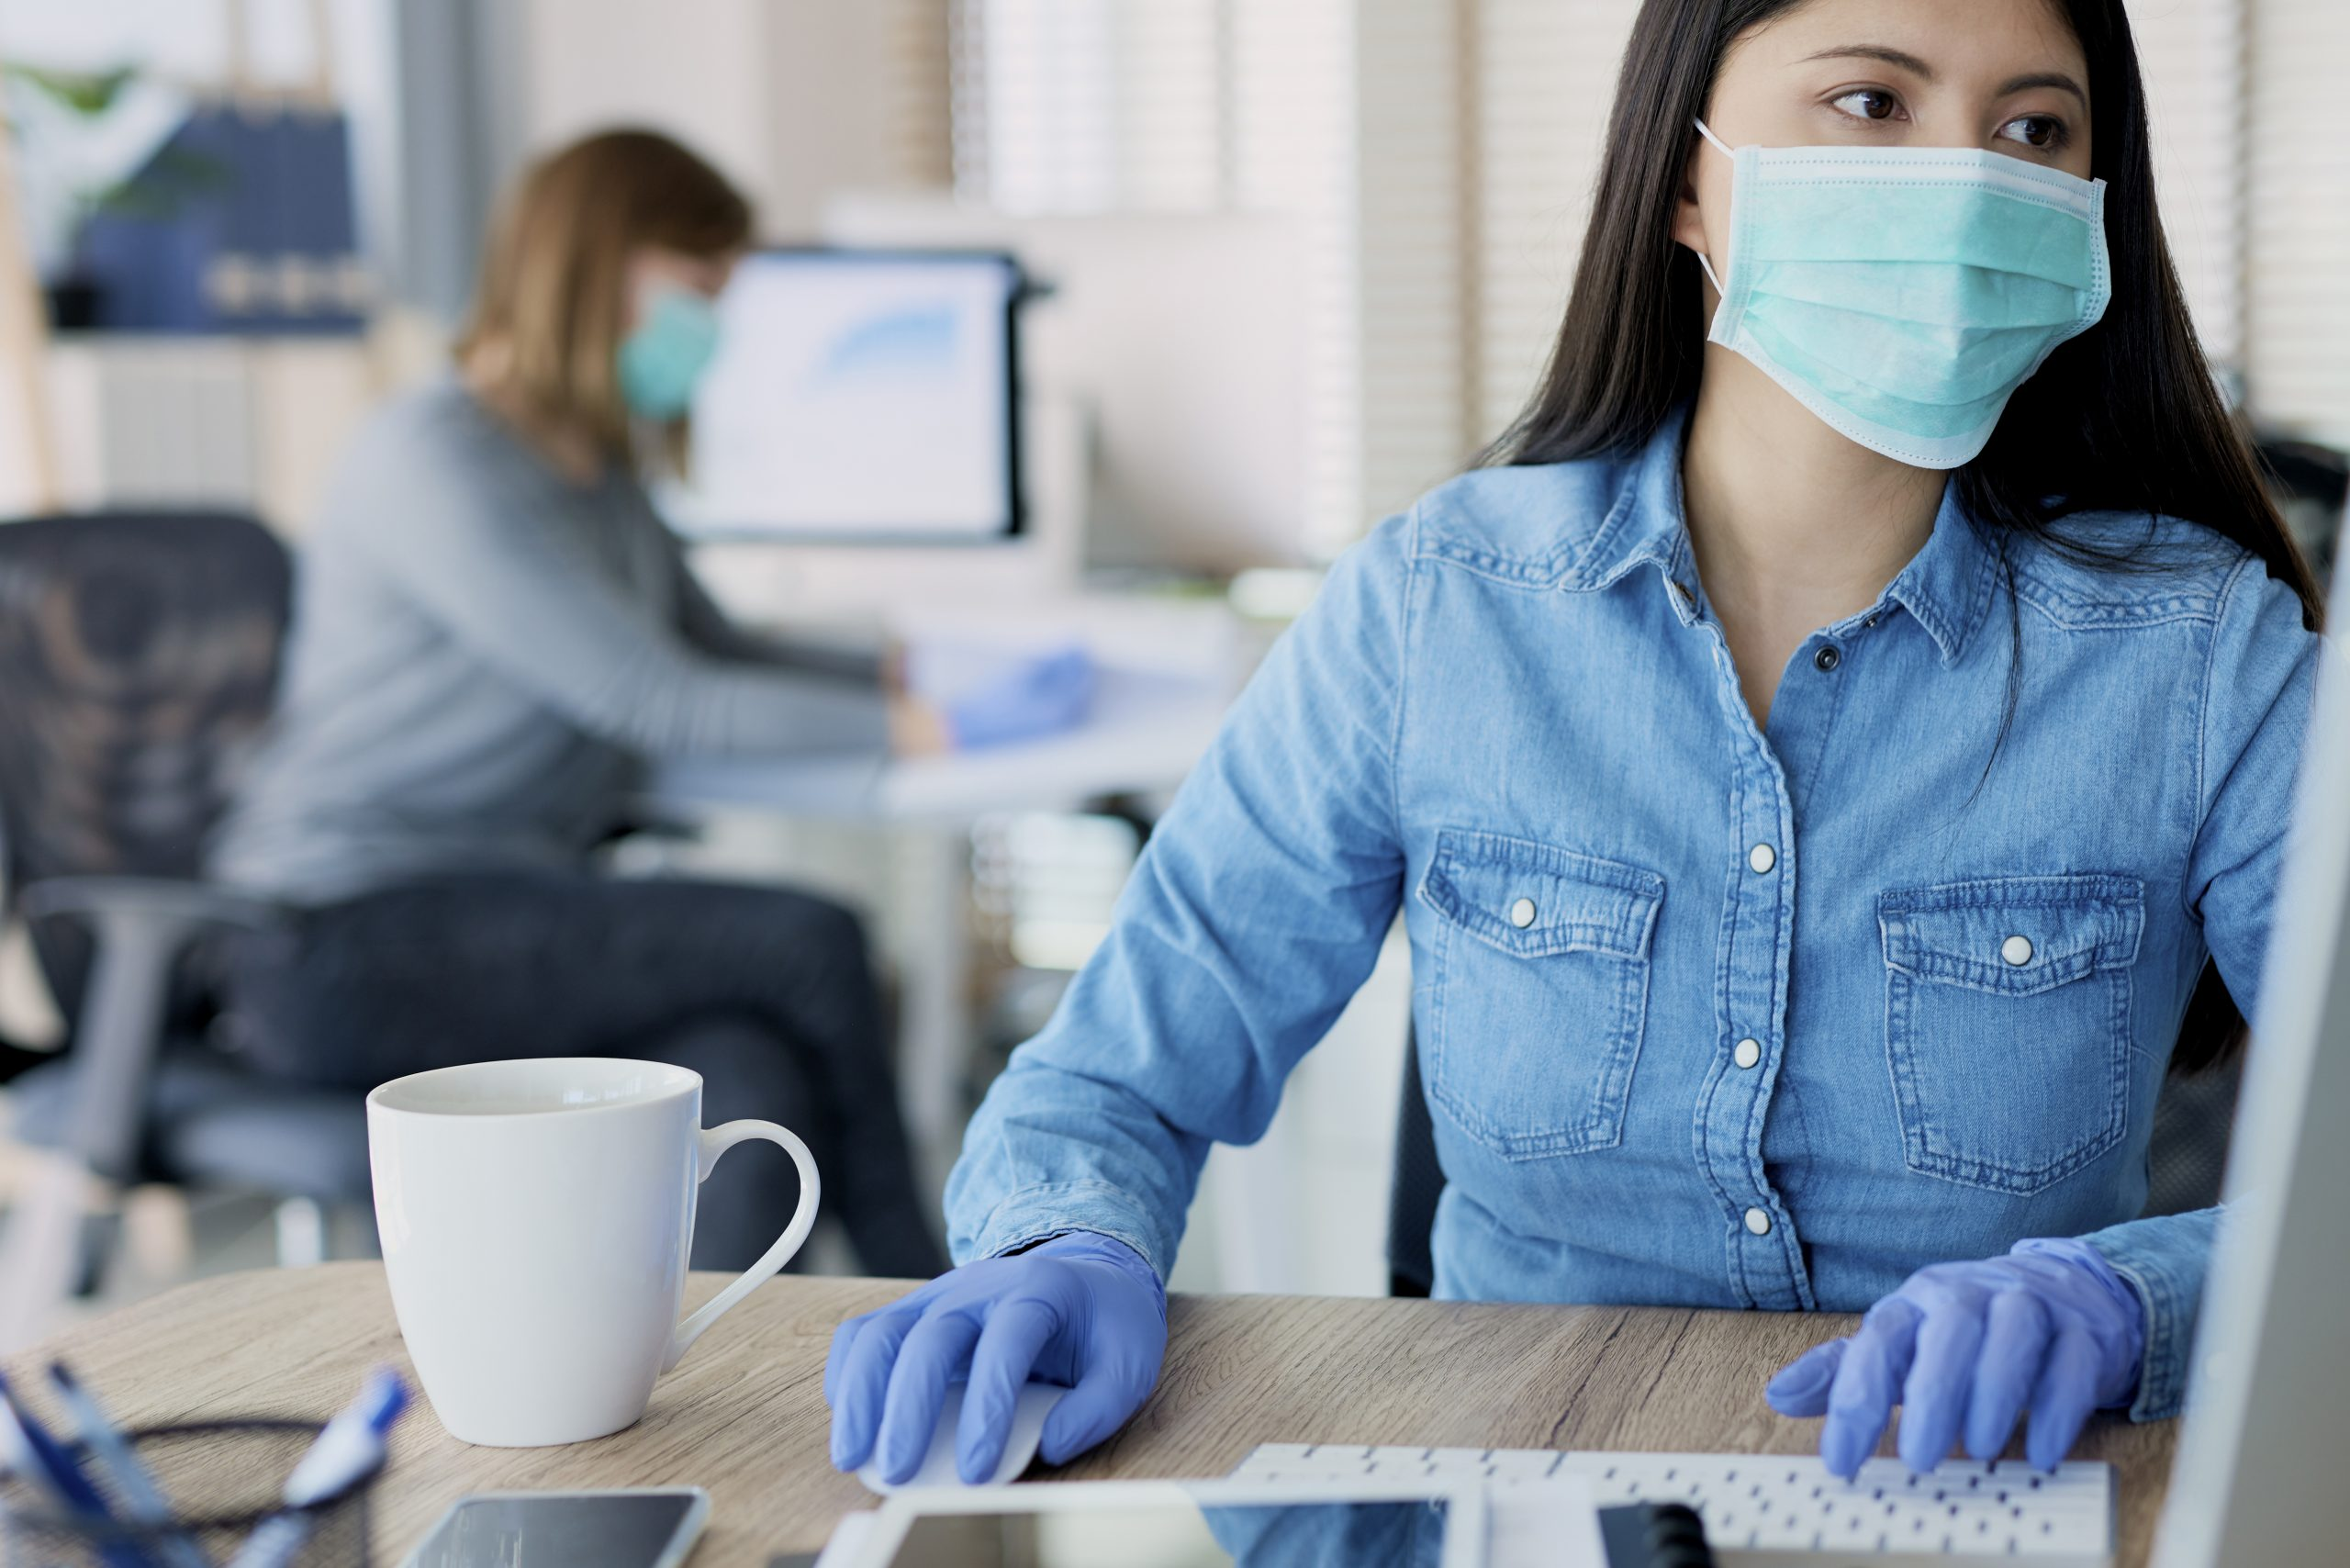 Office worker wearing PPE including gloves and facemask